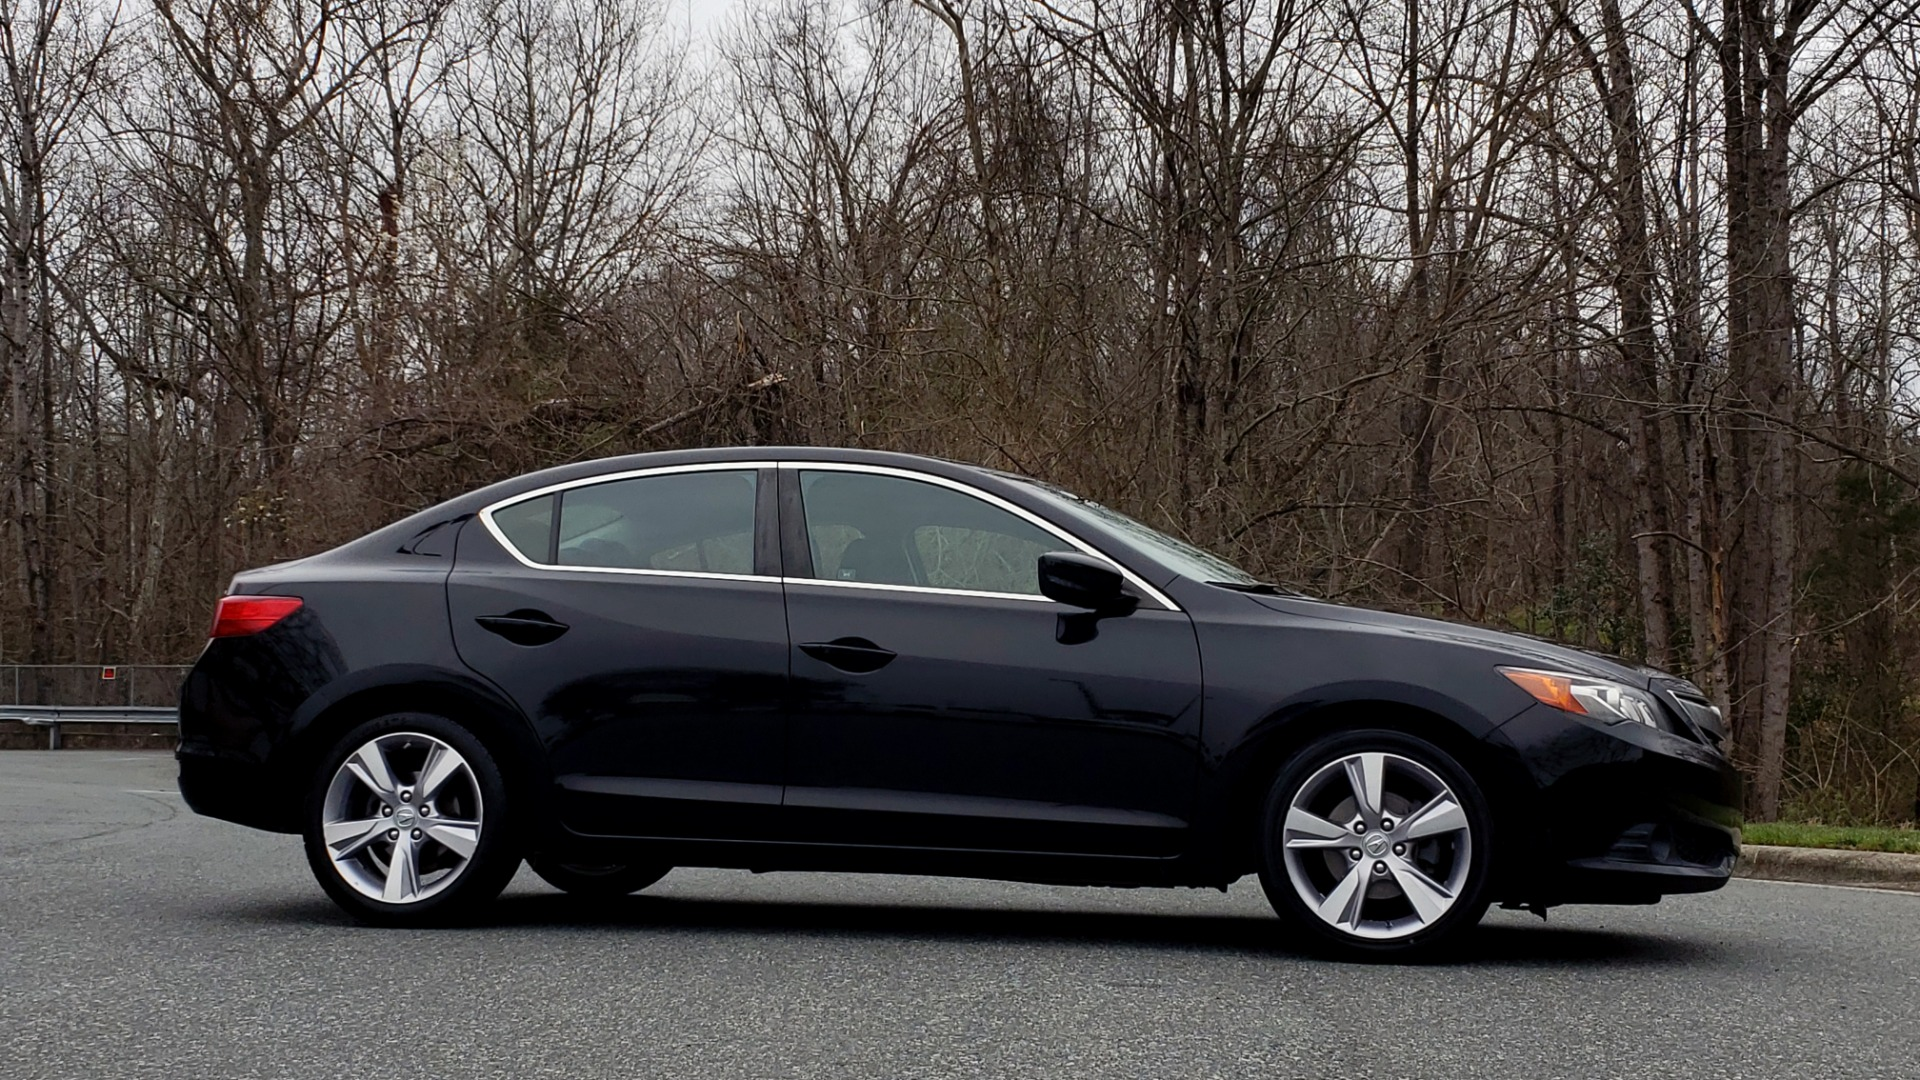 Used 2013 Acura ILX TECH PKG / SUNROOF / NAV / DUAL-ZONE A/C / REARVIEW for sale Sold at Formula Imports in Charlotte NC 28227 5